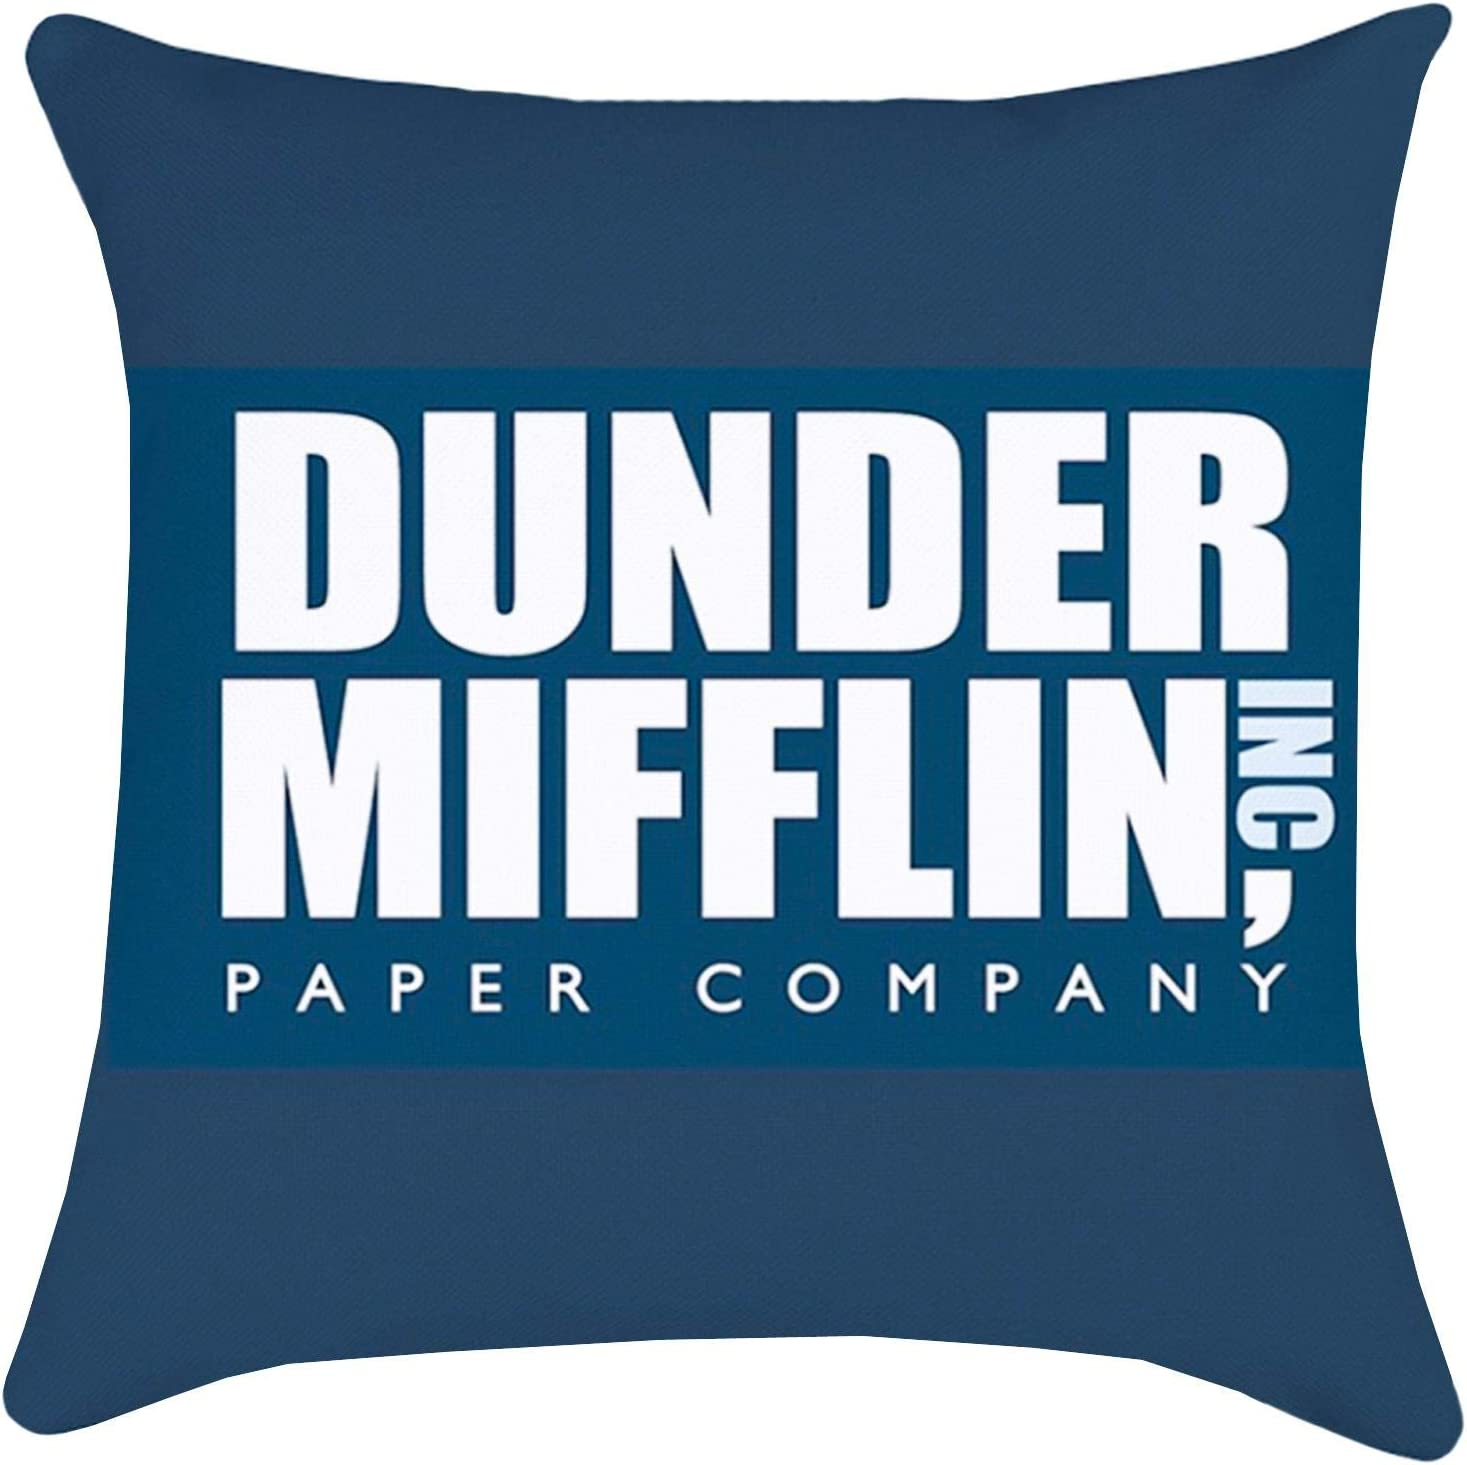 ZUEXT Office Merchandise Throw Pillow Covers 18x18 Inch Double Sided Design, Cotton Linen Funny Office Decorative Outdoor Cushion Cover Pillowcase for Sofa Couch Chair Home Decor(Dunder Mifflin)